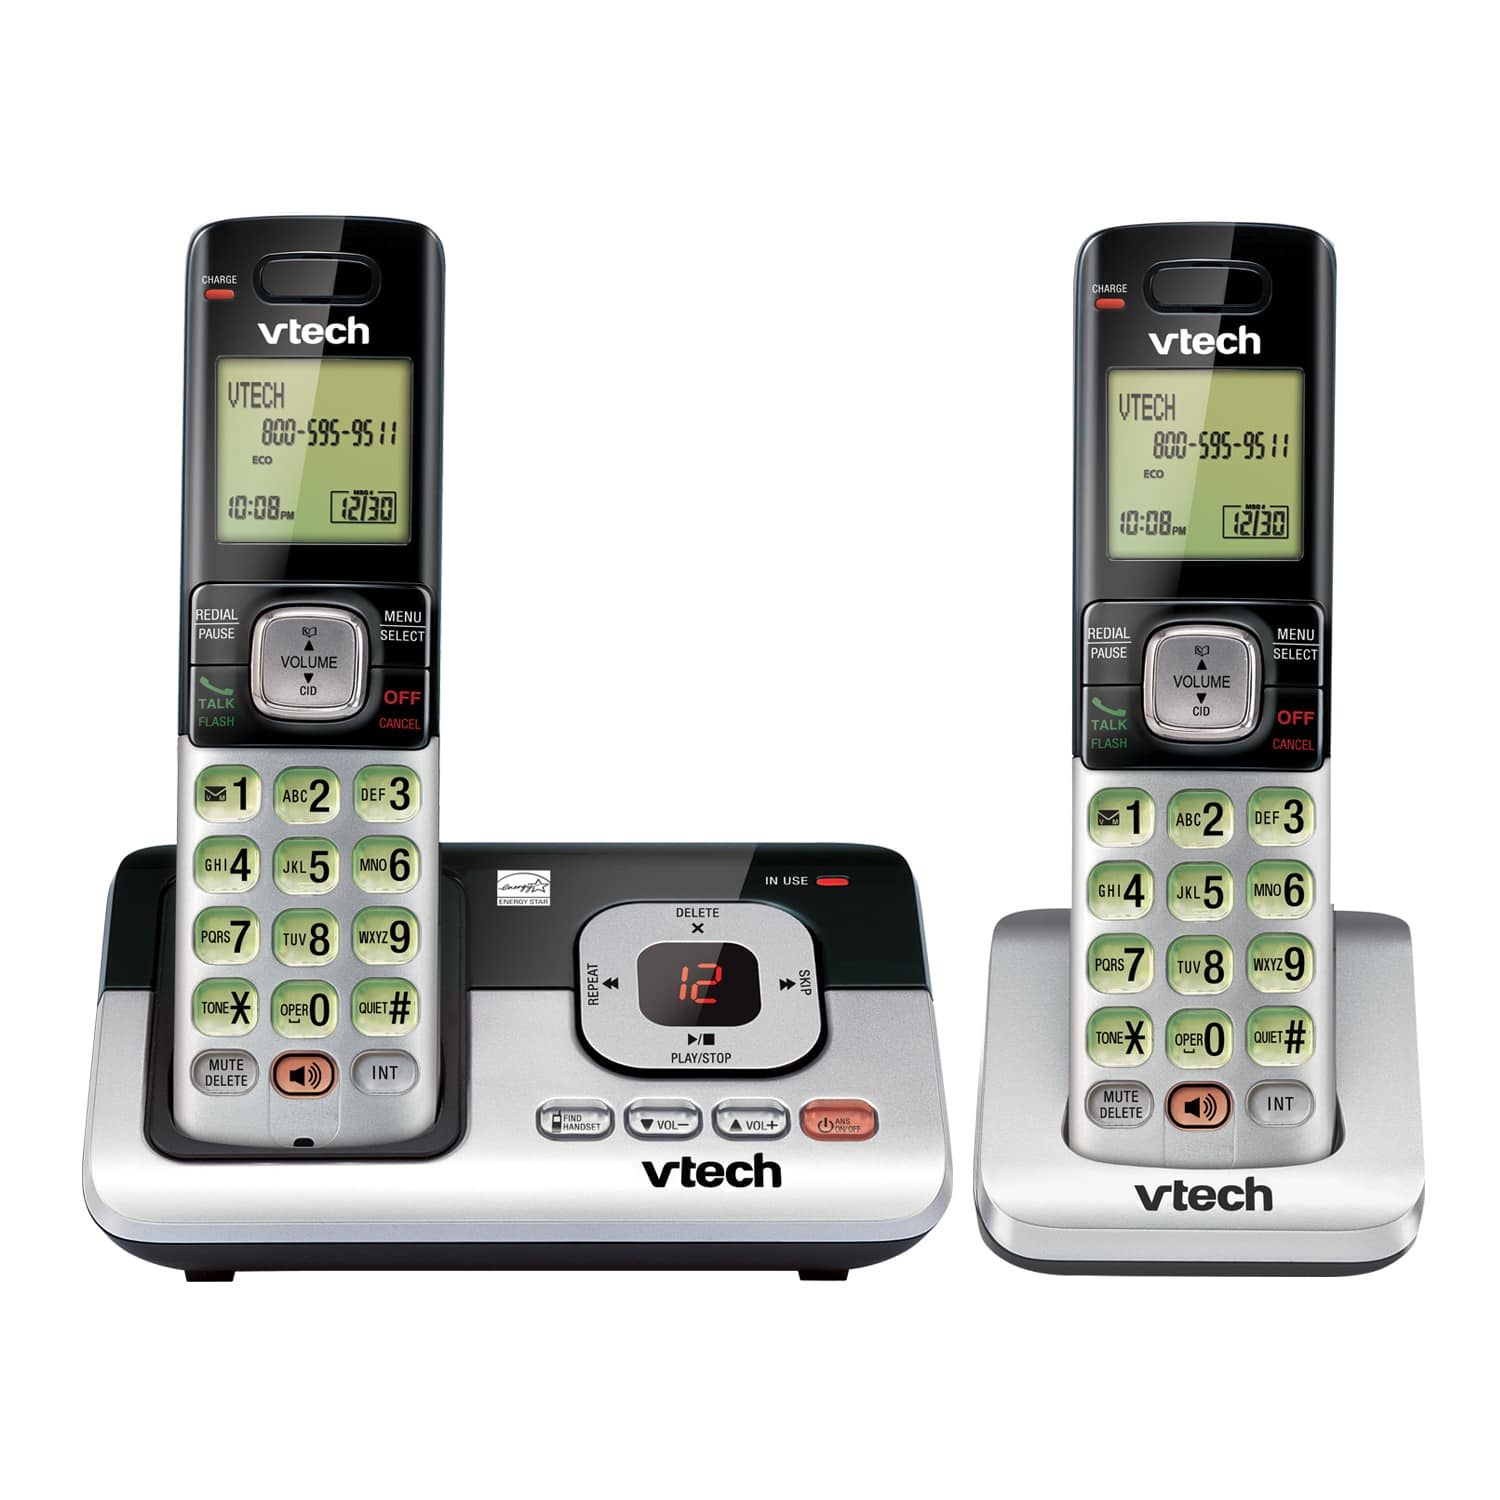 2 handset answering system with caller id call waiting cs6829 2 rh vtechphones com vtech cordless phone manual cs6829 vtech cordless phone manual dect 6.0